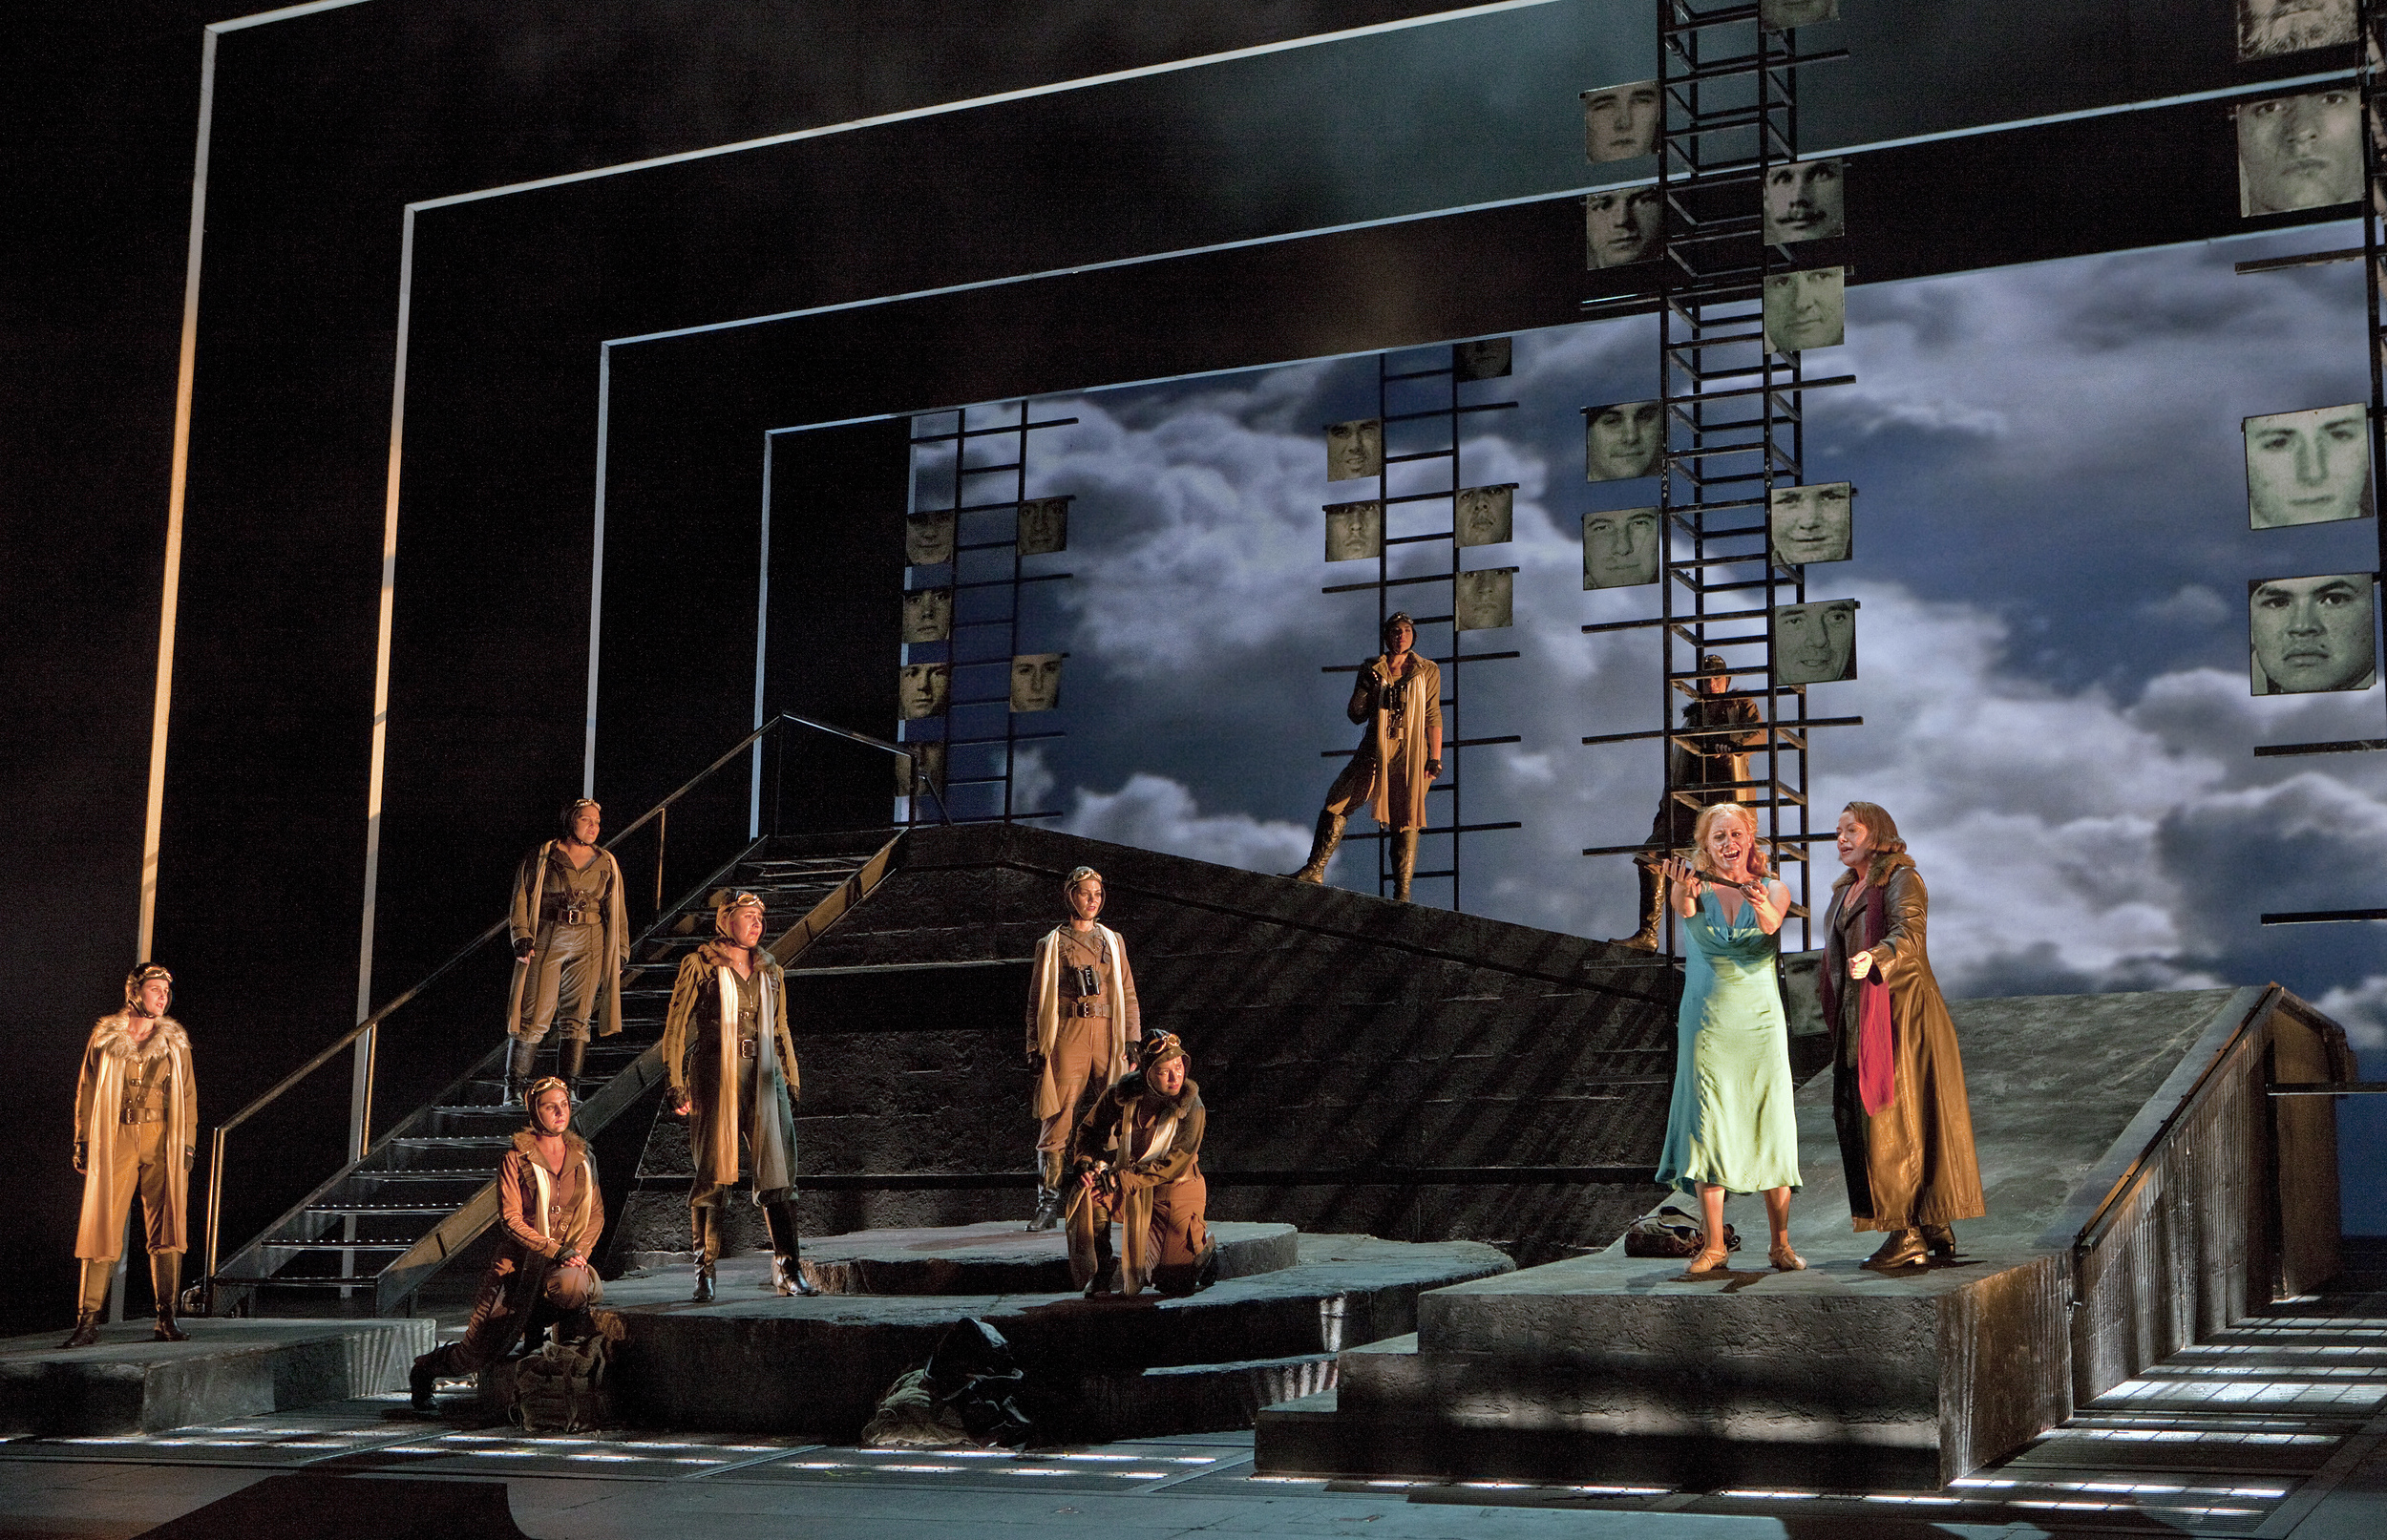 Brunnhilde convinces Sieglinde to hide from Wotan for the sake of her child to be, while the other Valkyries look on. Photo courtesy of Washington National Opera/ Kennedy Center.